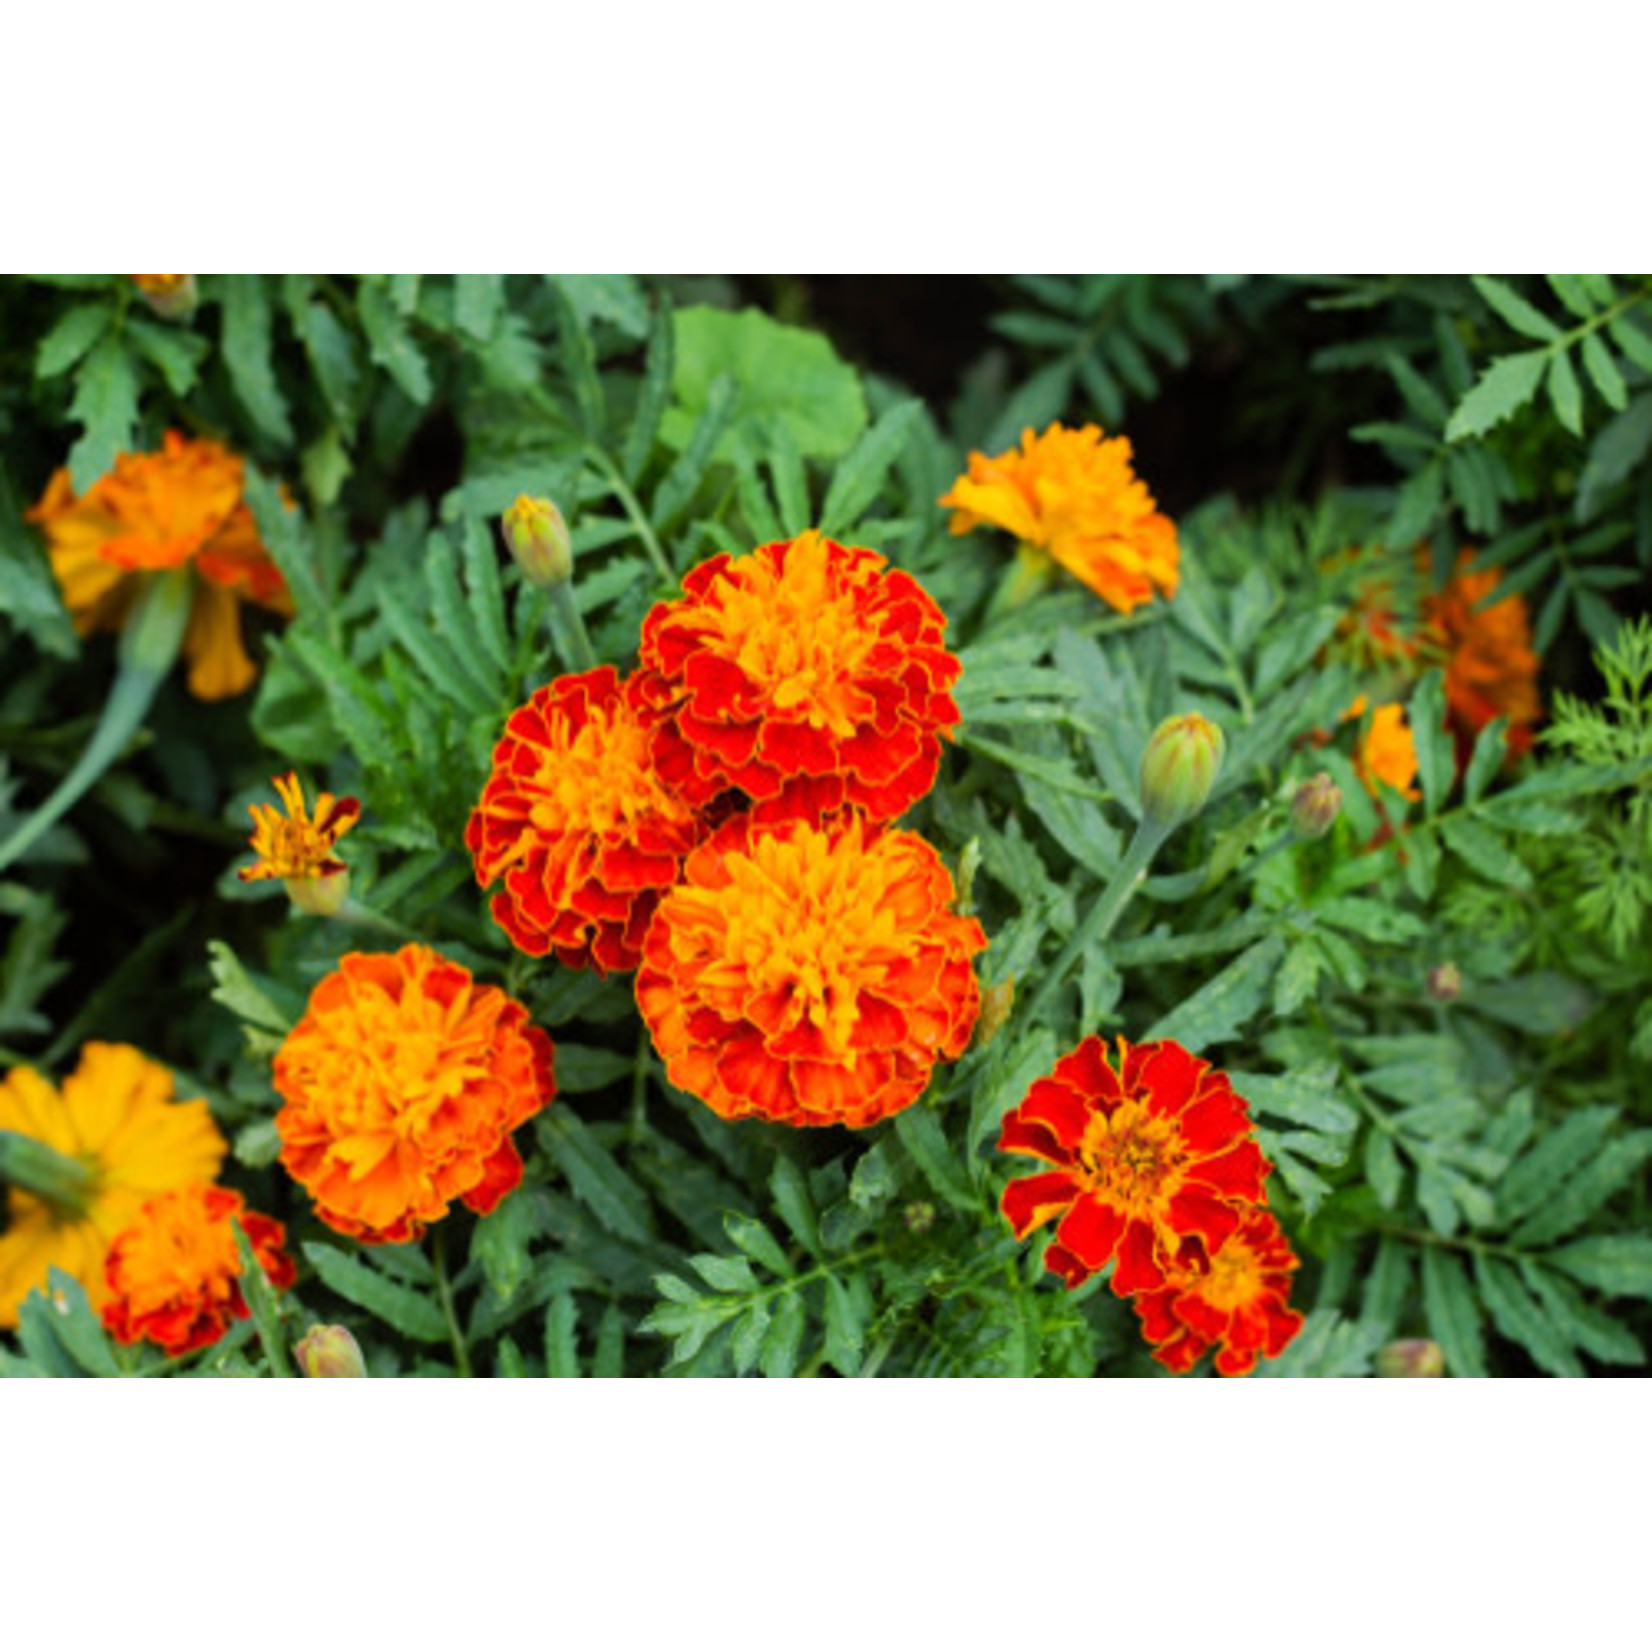 Marigold - 4 Cell Pack